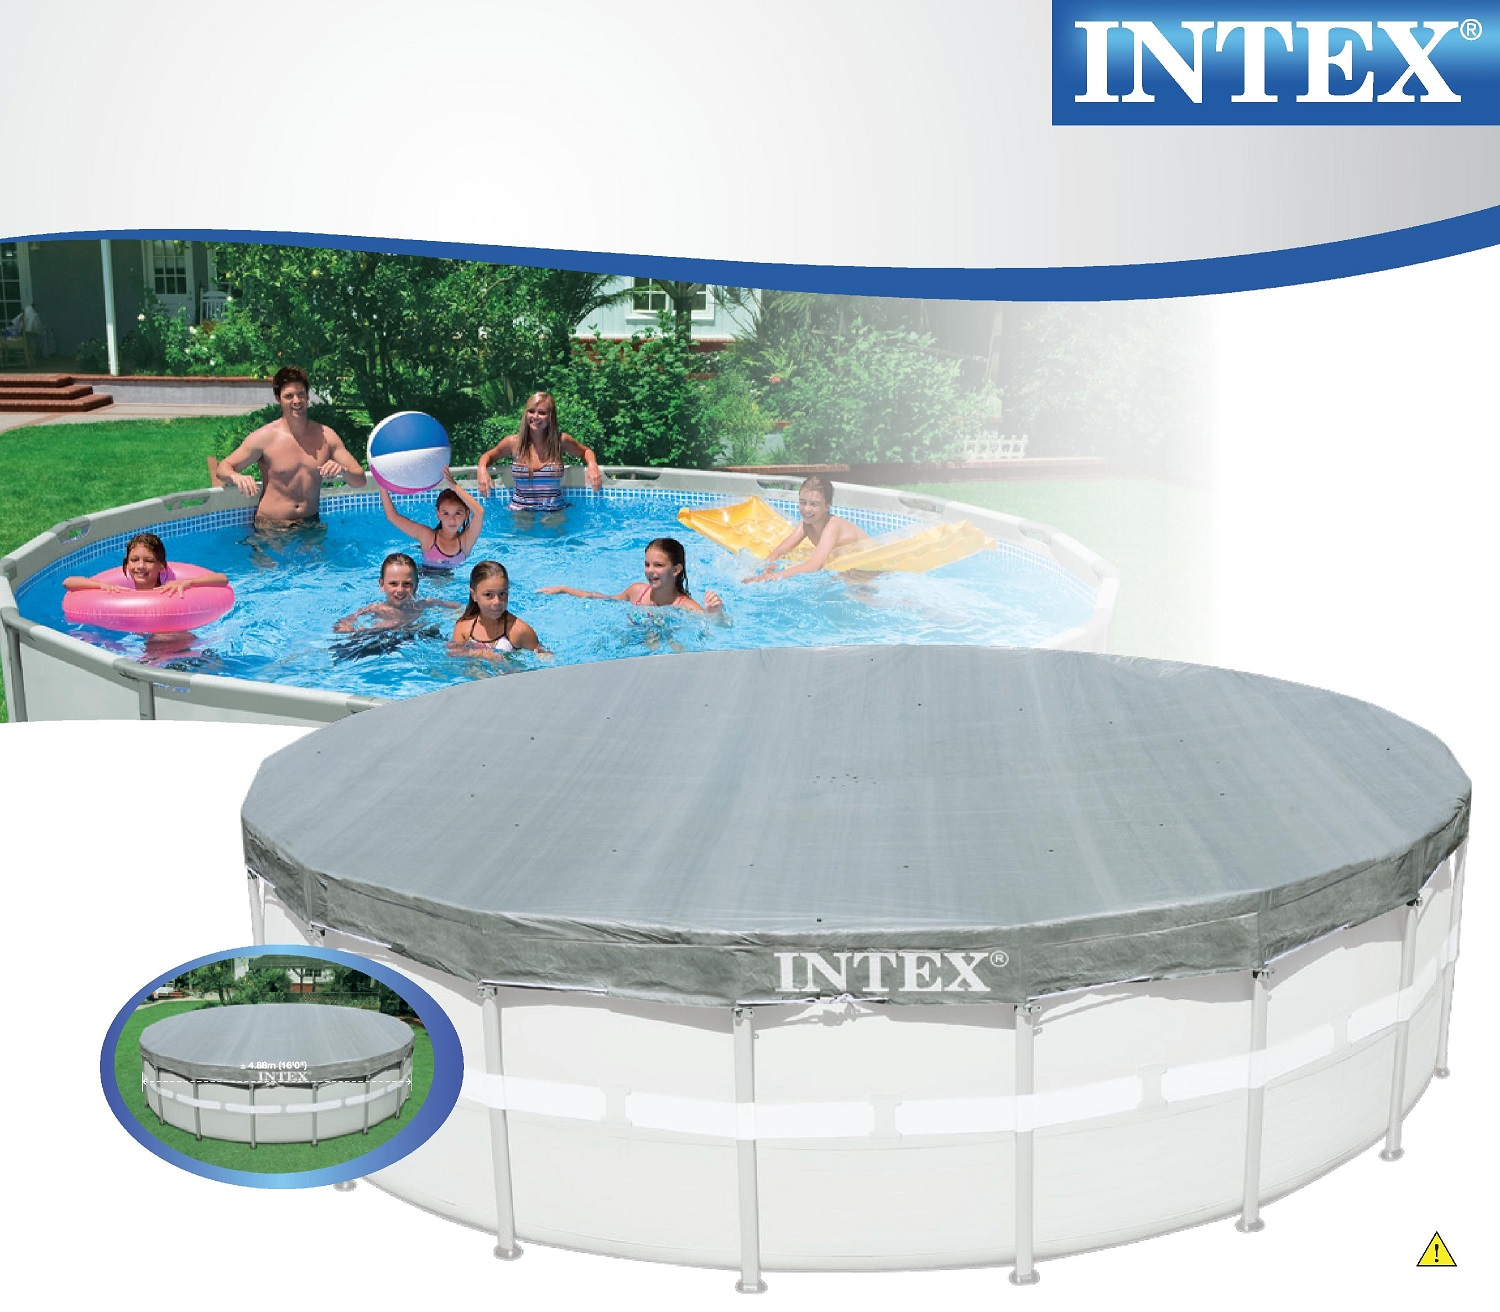 intex 28040 swimming pool deluxe uv abdeckplane frame pool. Black Bedroom Furniture Sets. Home Design Ideas